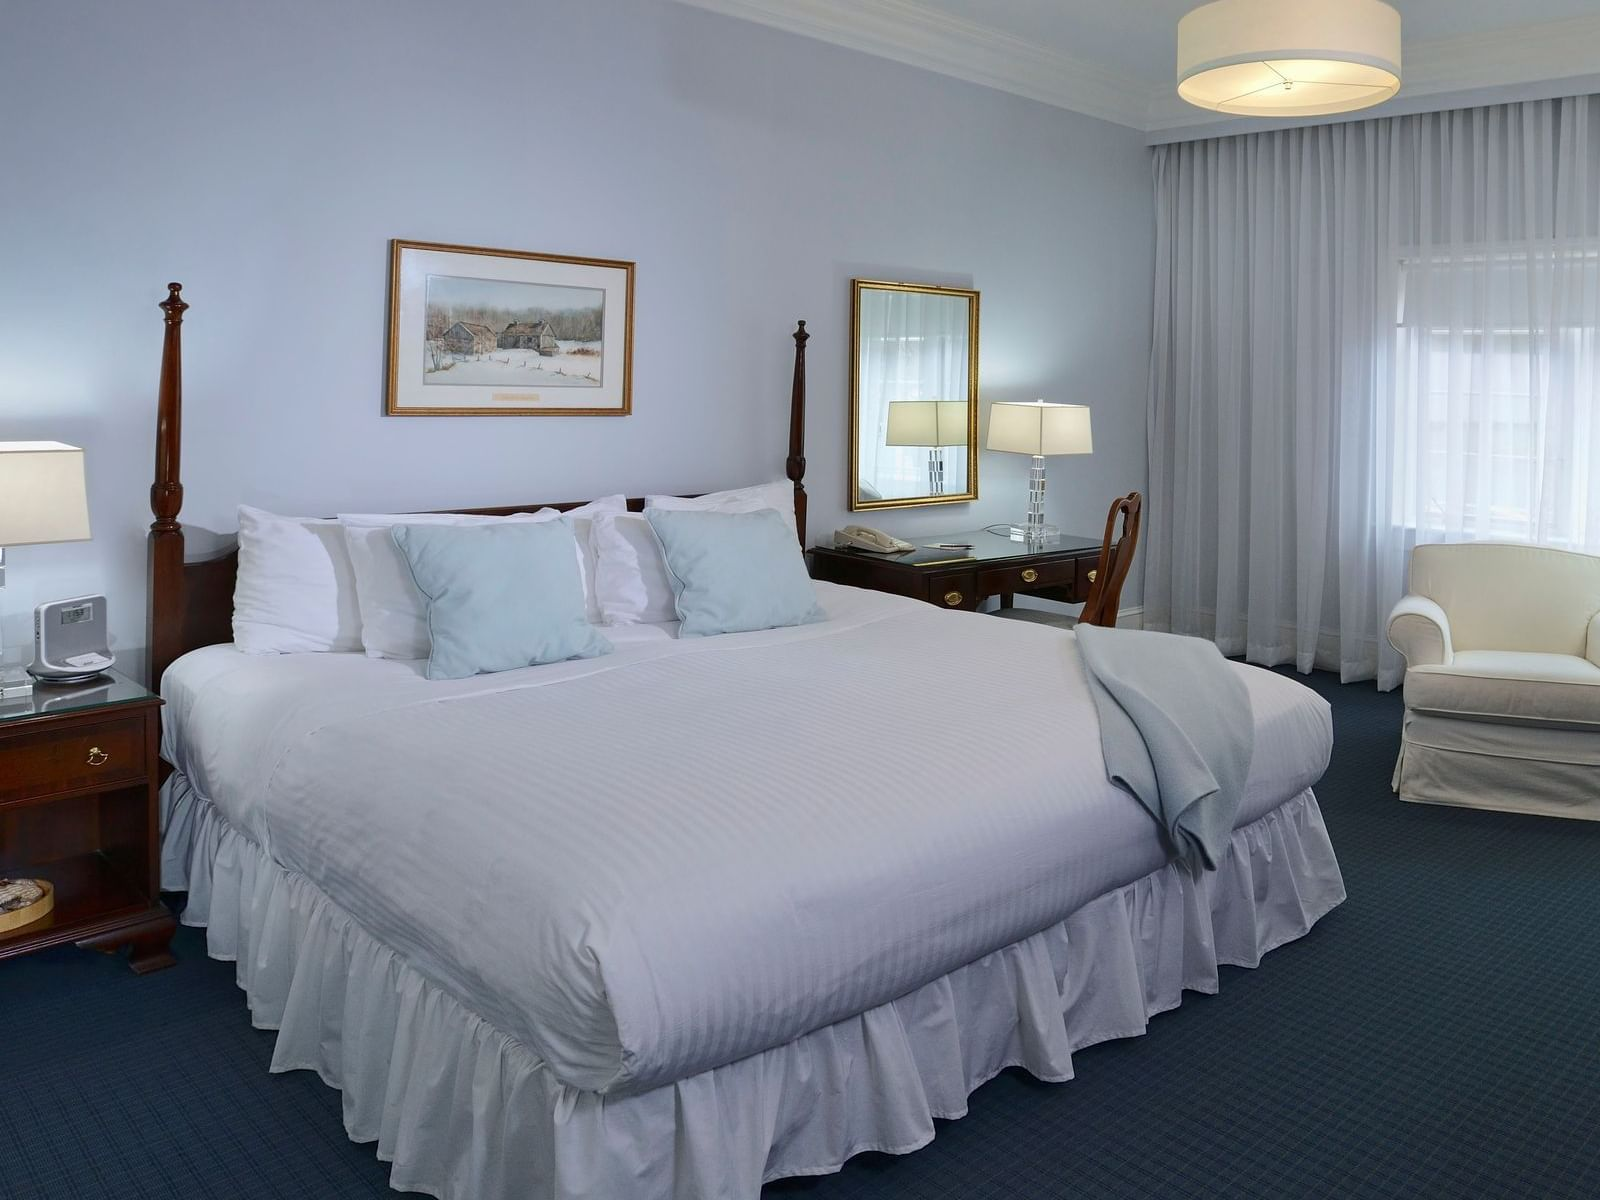 View of Luxury King with king bed at Avon Old Farms Hotel